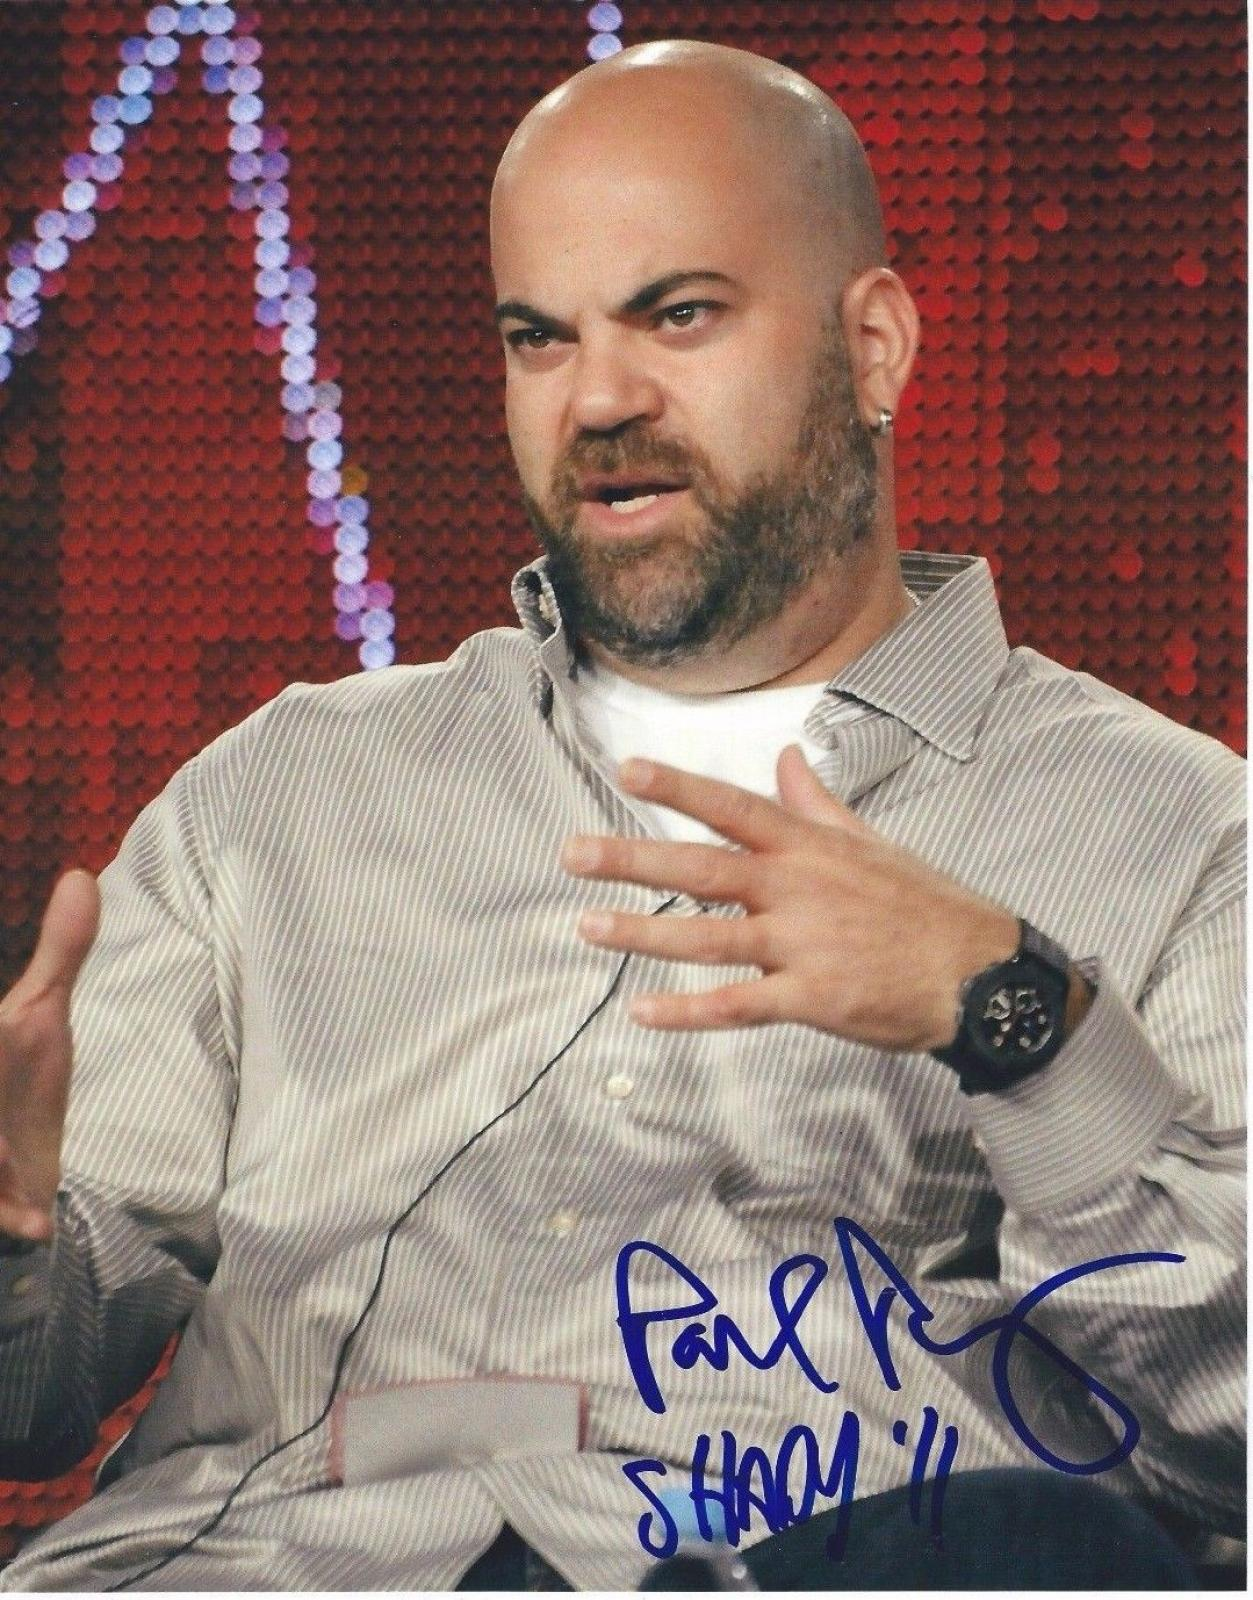 Eminem Producer PAUL ROSENBERG Signed 8x10 Photo